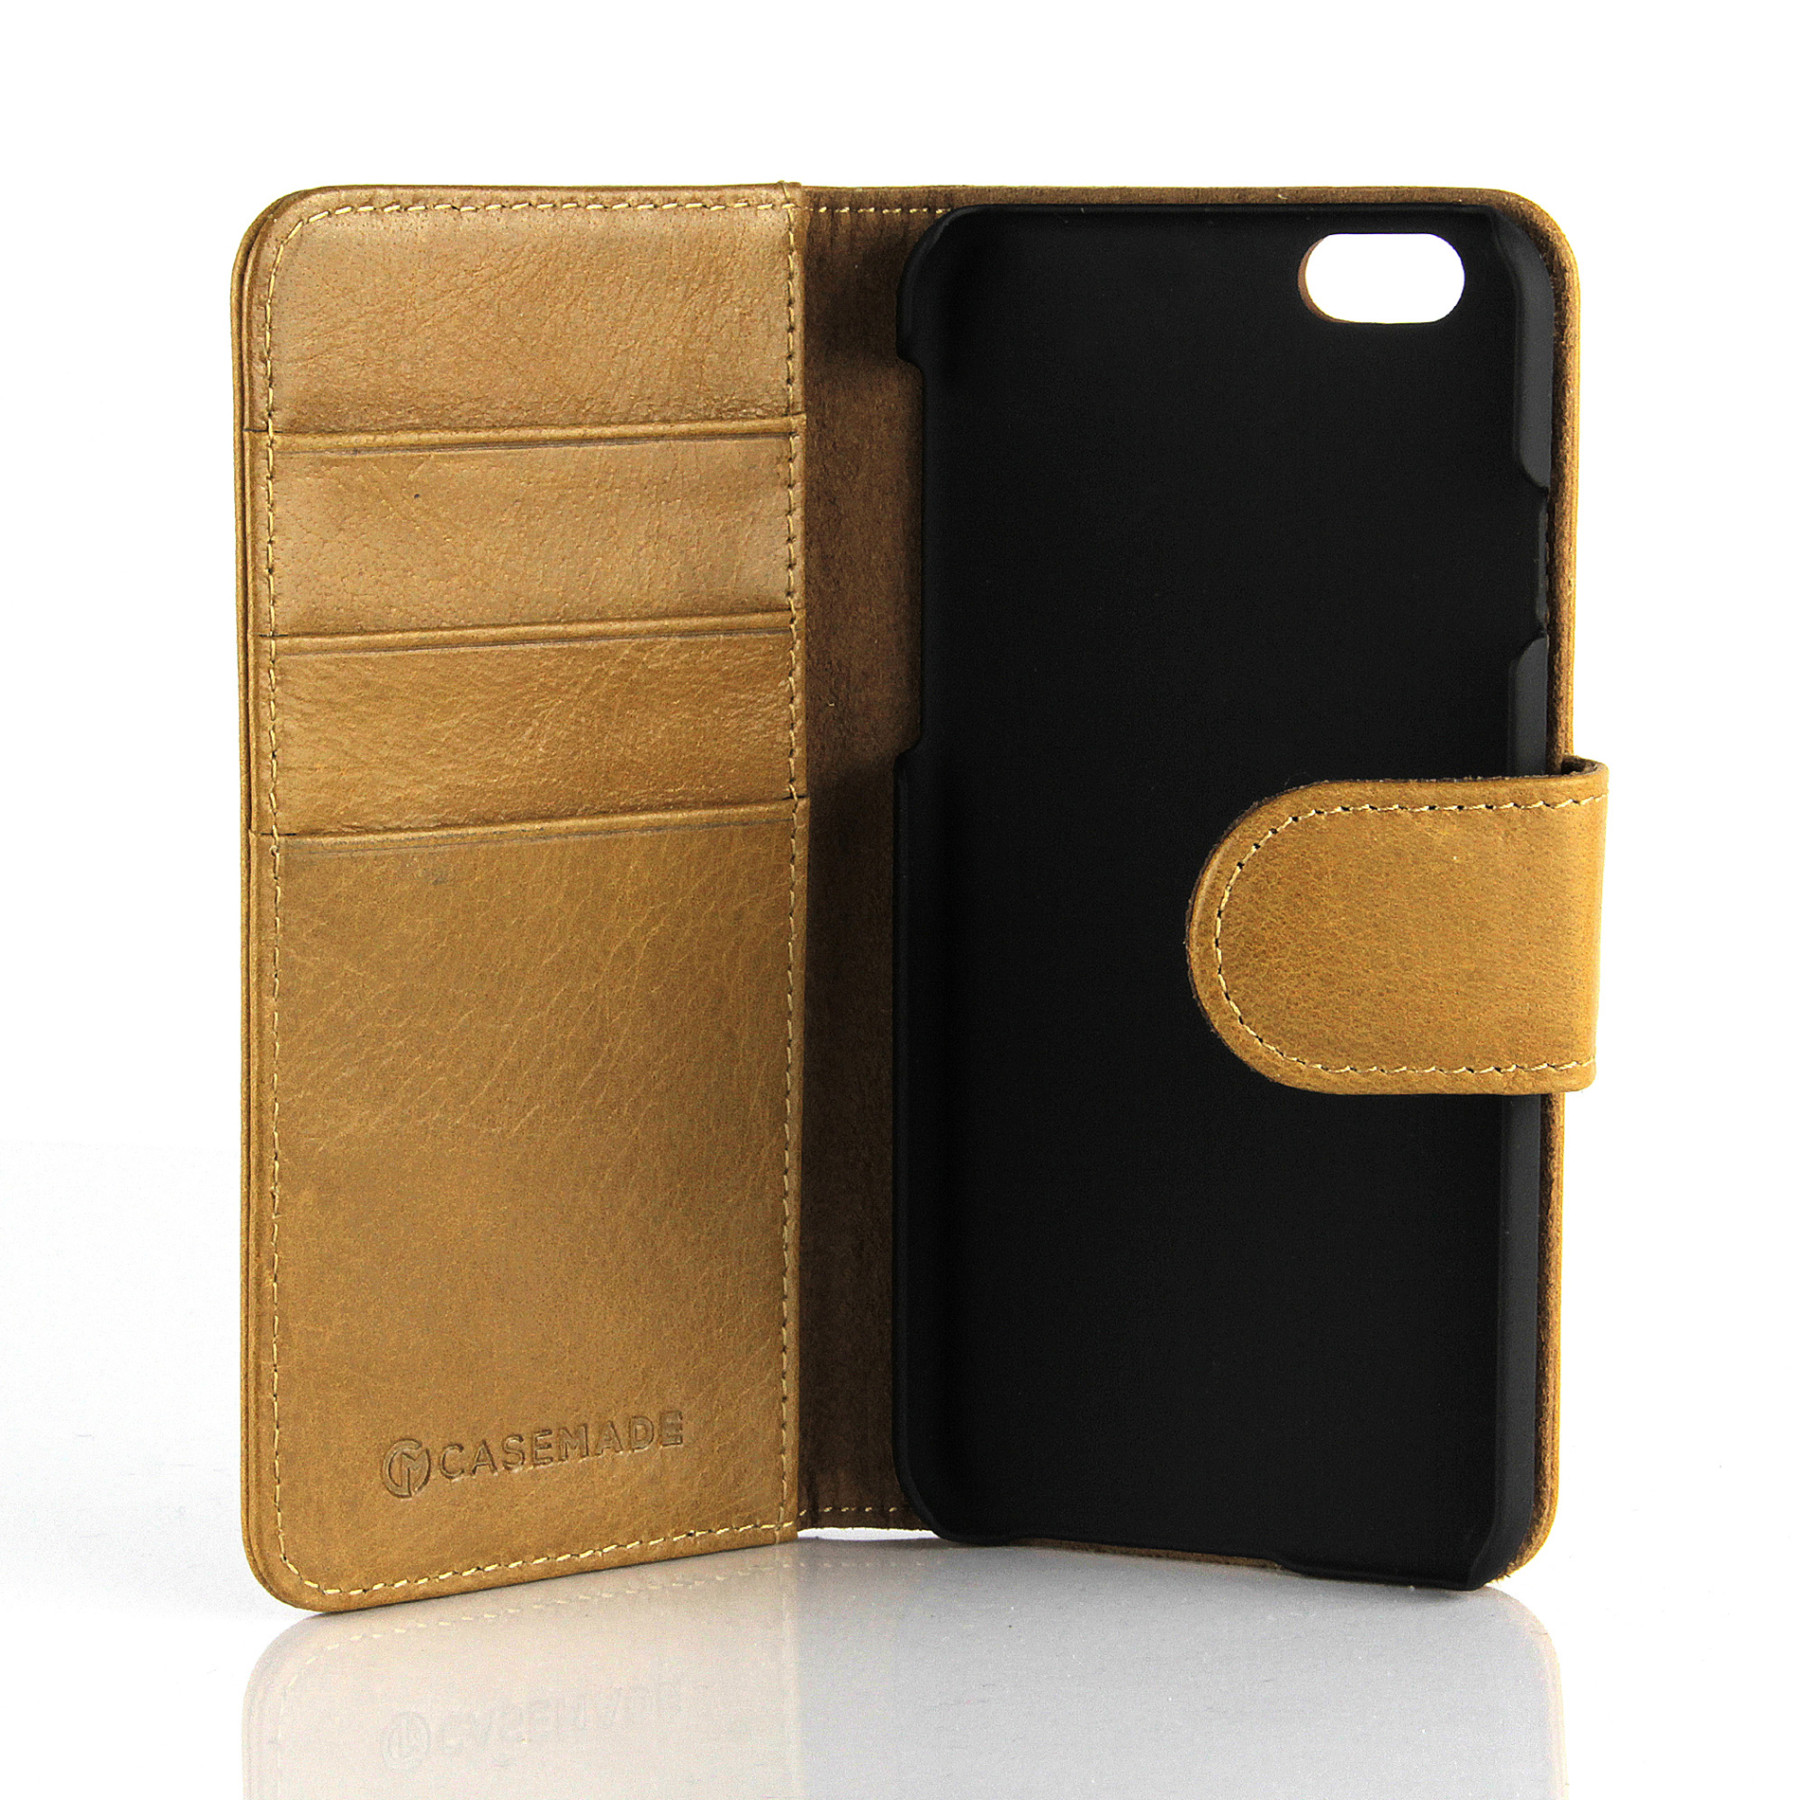 apple iphone 6s leather wallet case tan casemade usa. Black Bedroom Furniture Sets. Home Design Ideas